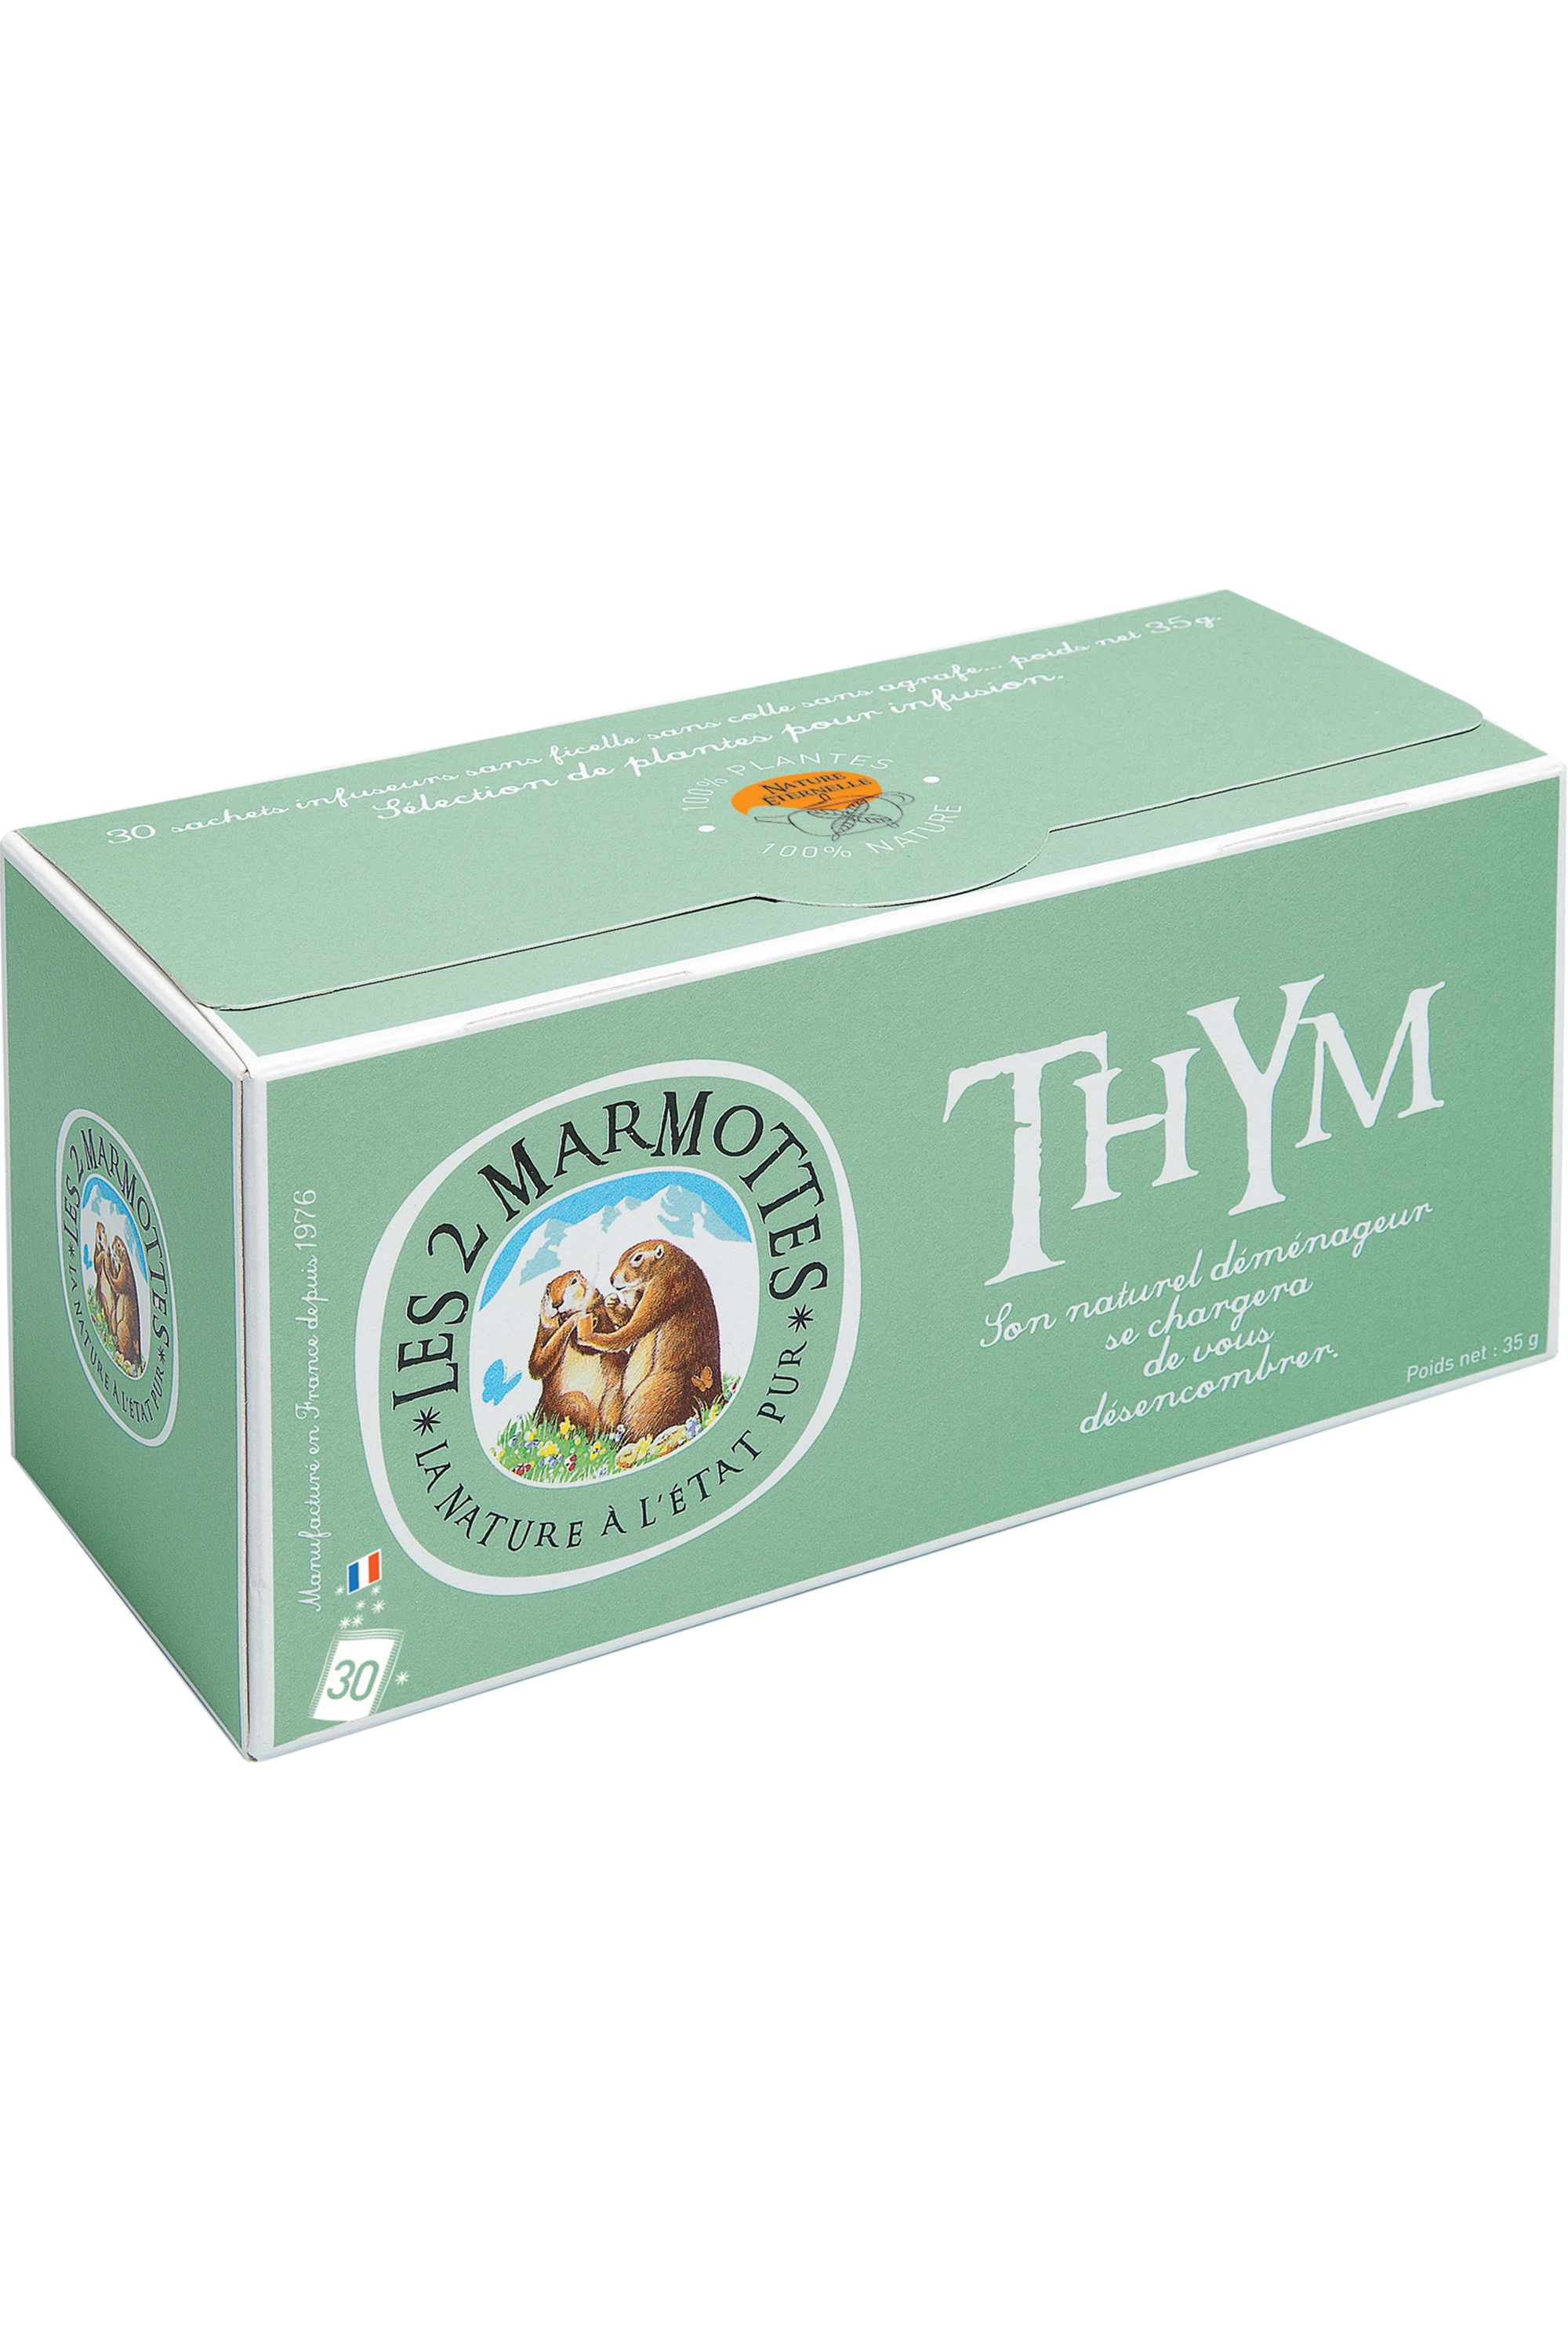 Blissim : Les 2 Marmottes - Infusion Thym – 30 sachets - Infusion Thym – 30 sachets